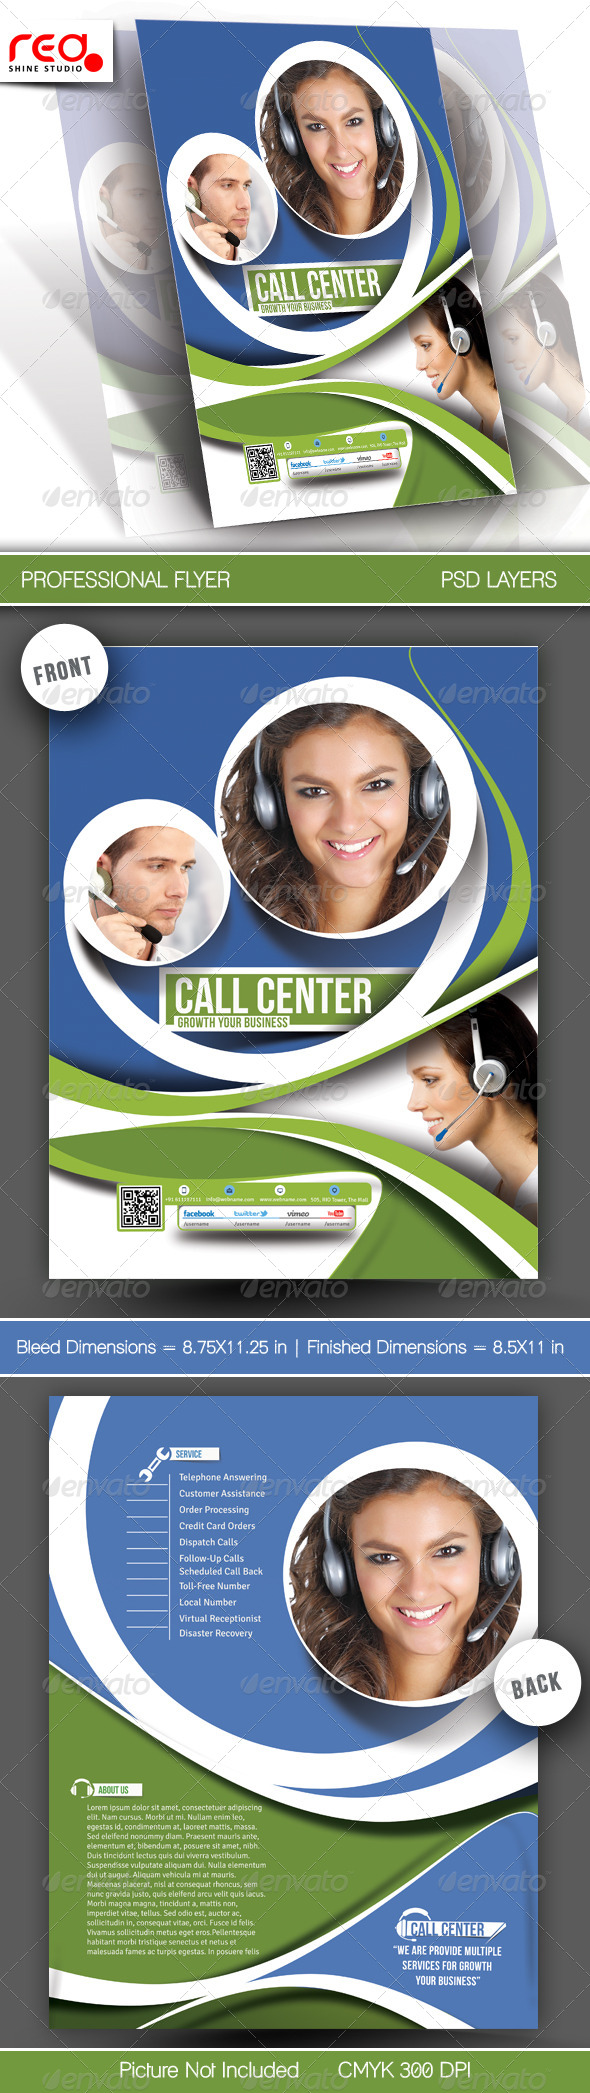 Customer Support Flyer & Poster Template - 3 - Corporate Flyers